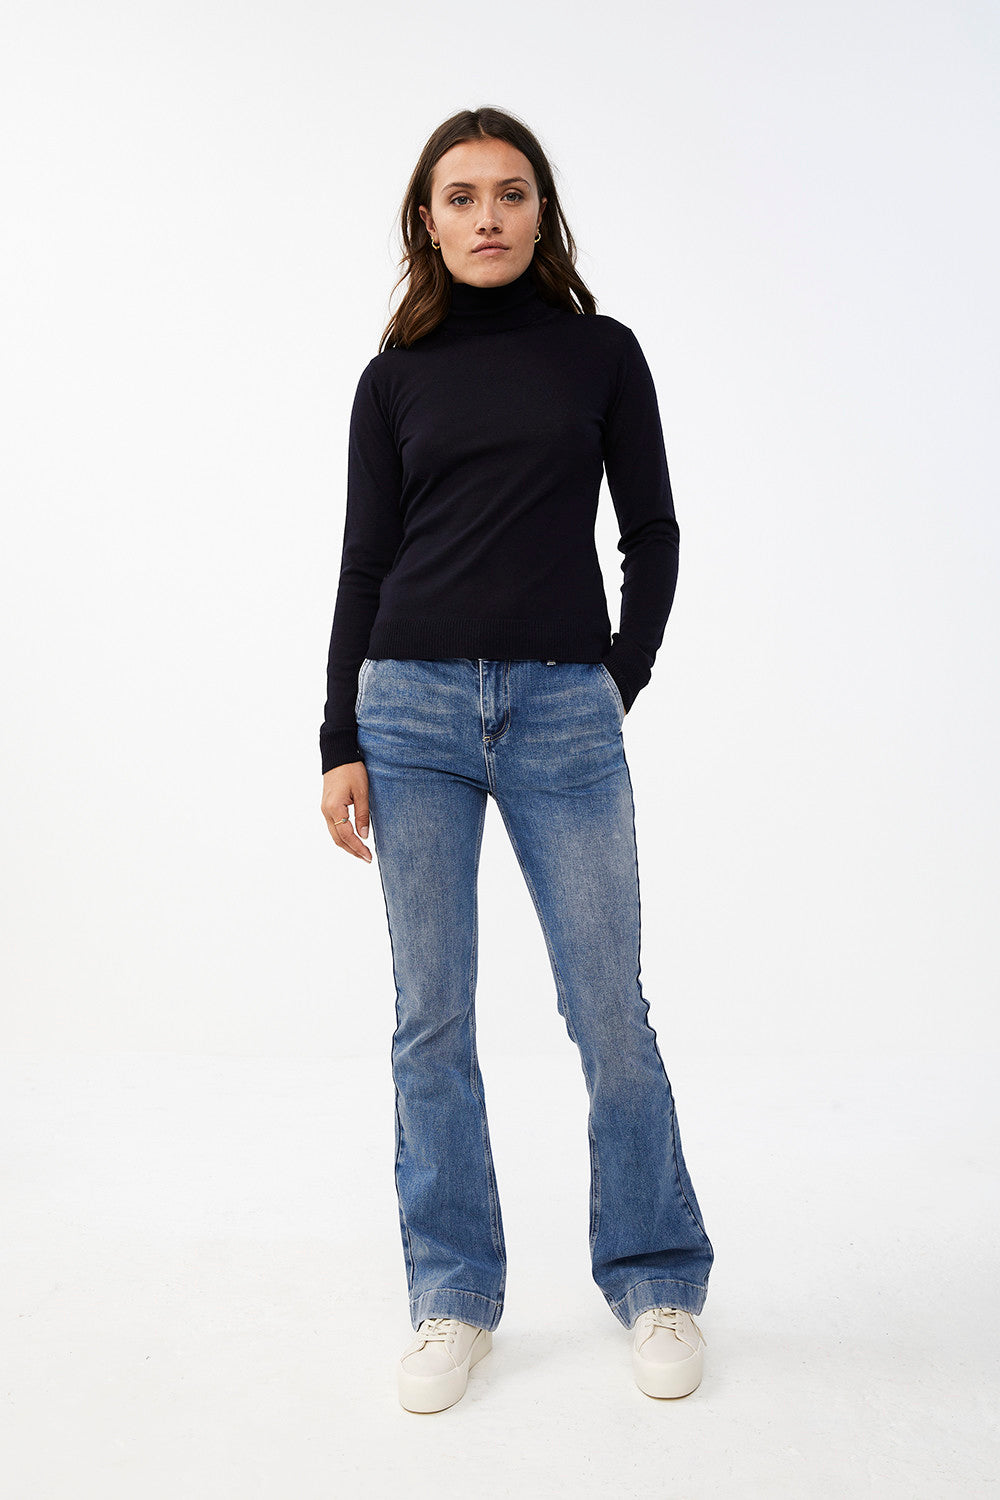 By-Bar lisa turtle neck black